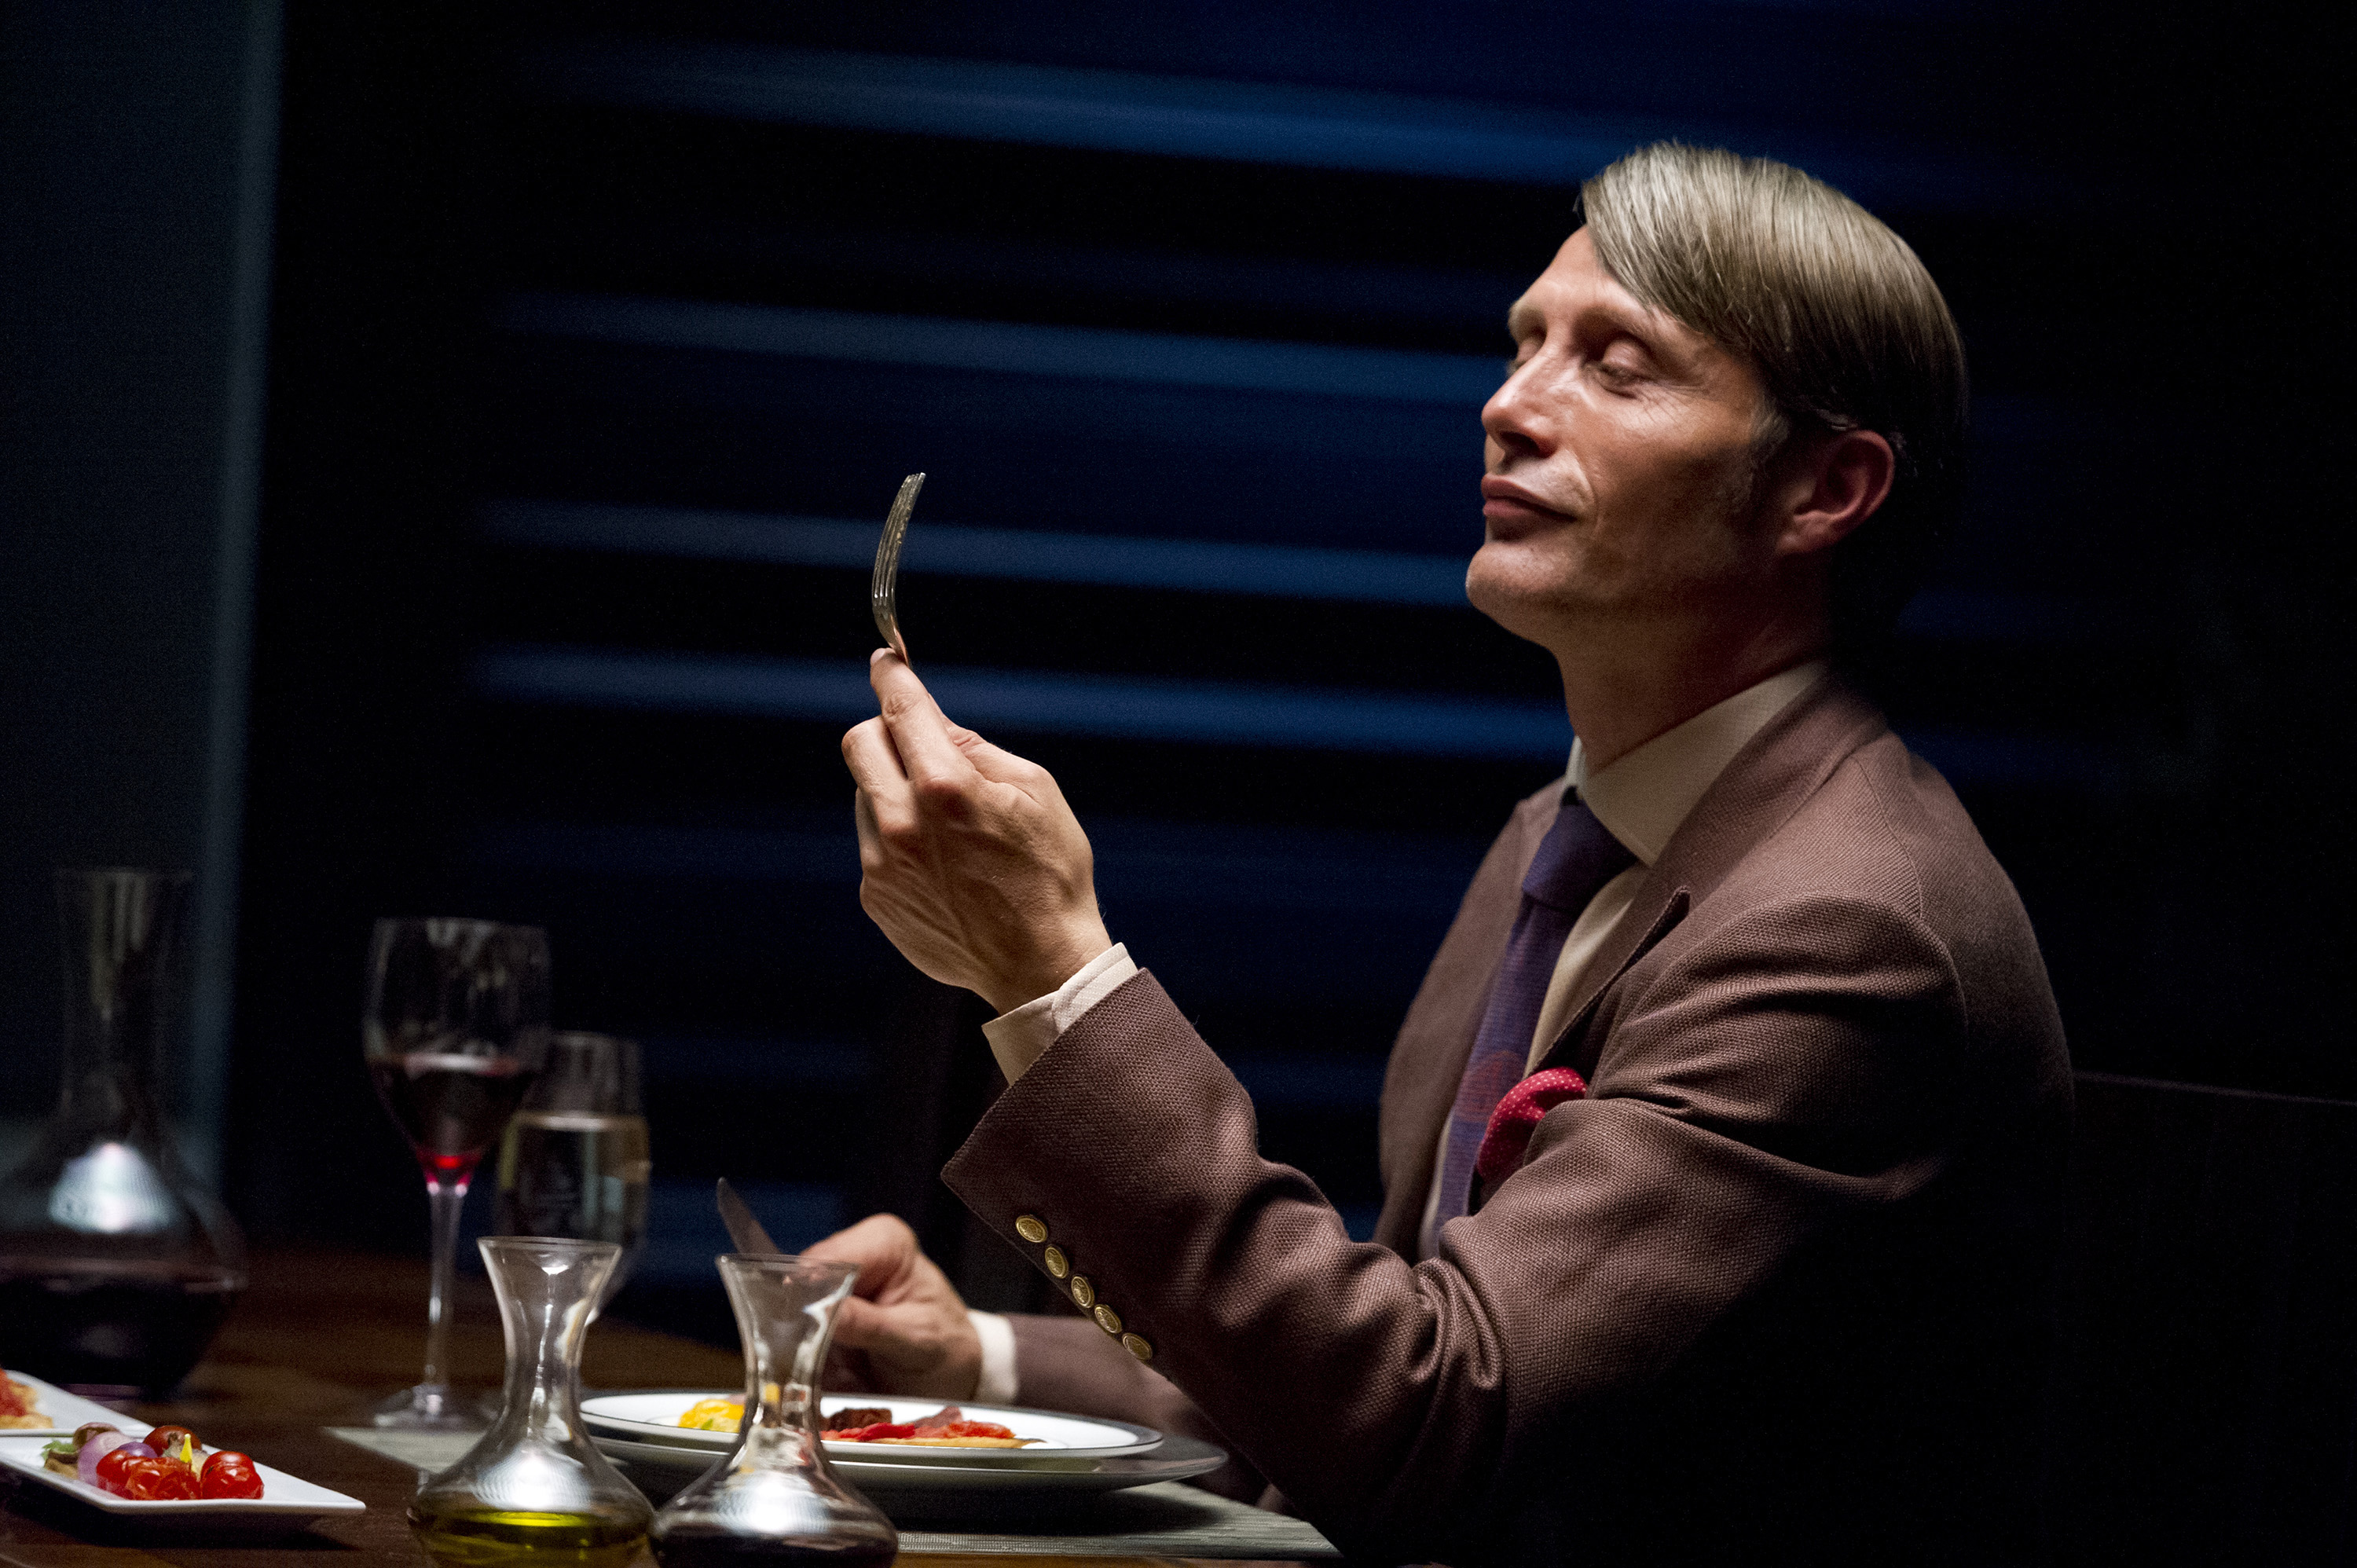 Hannibal - best series on amazon prime